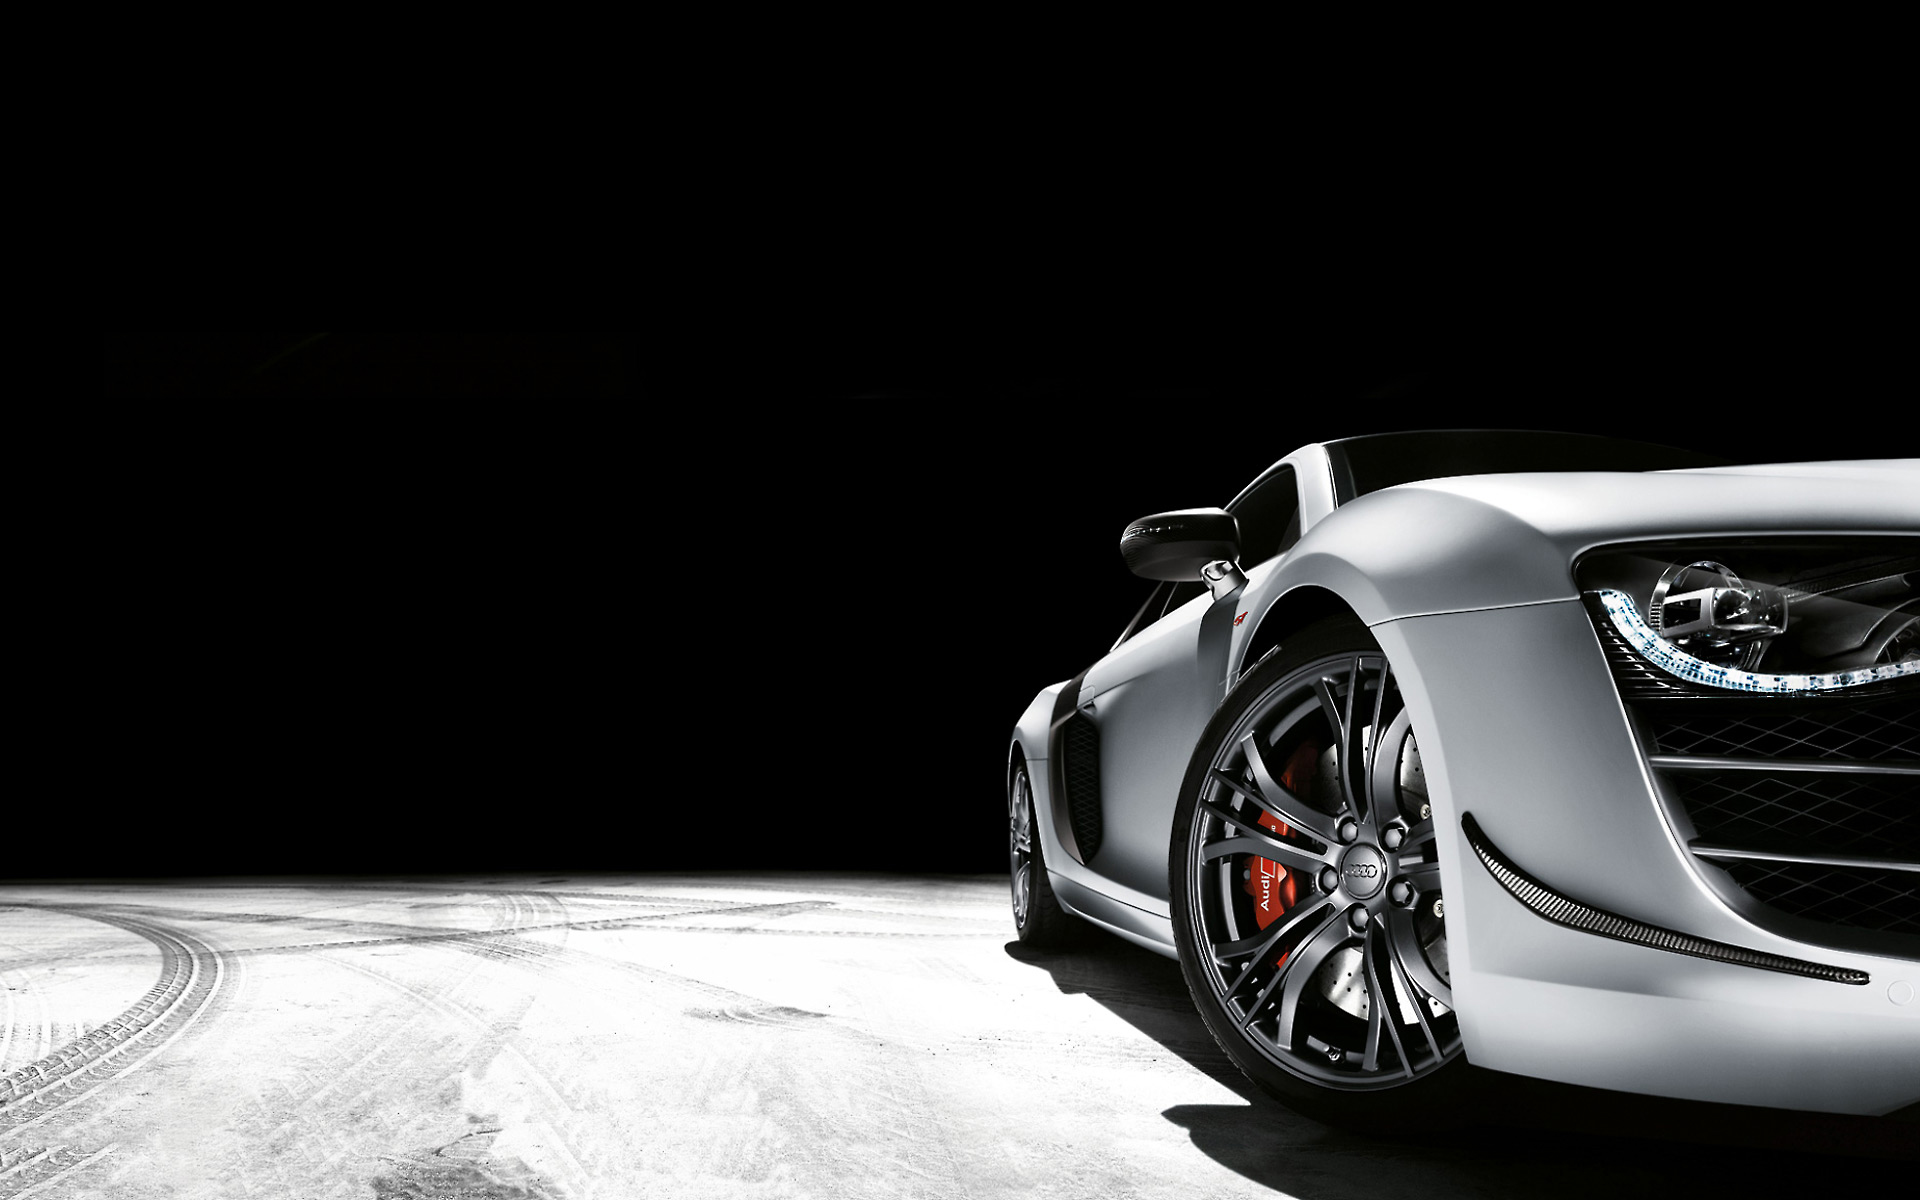 50 Super Sports Car Wallpapers Thatll Blow Your Desktop Away 1920x1200